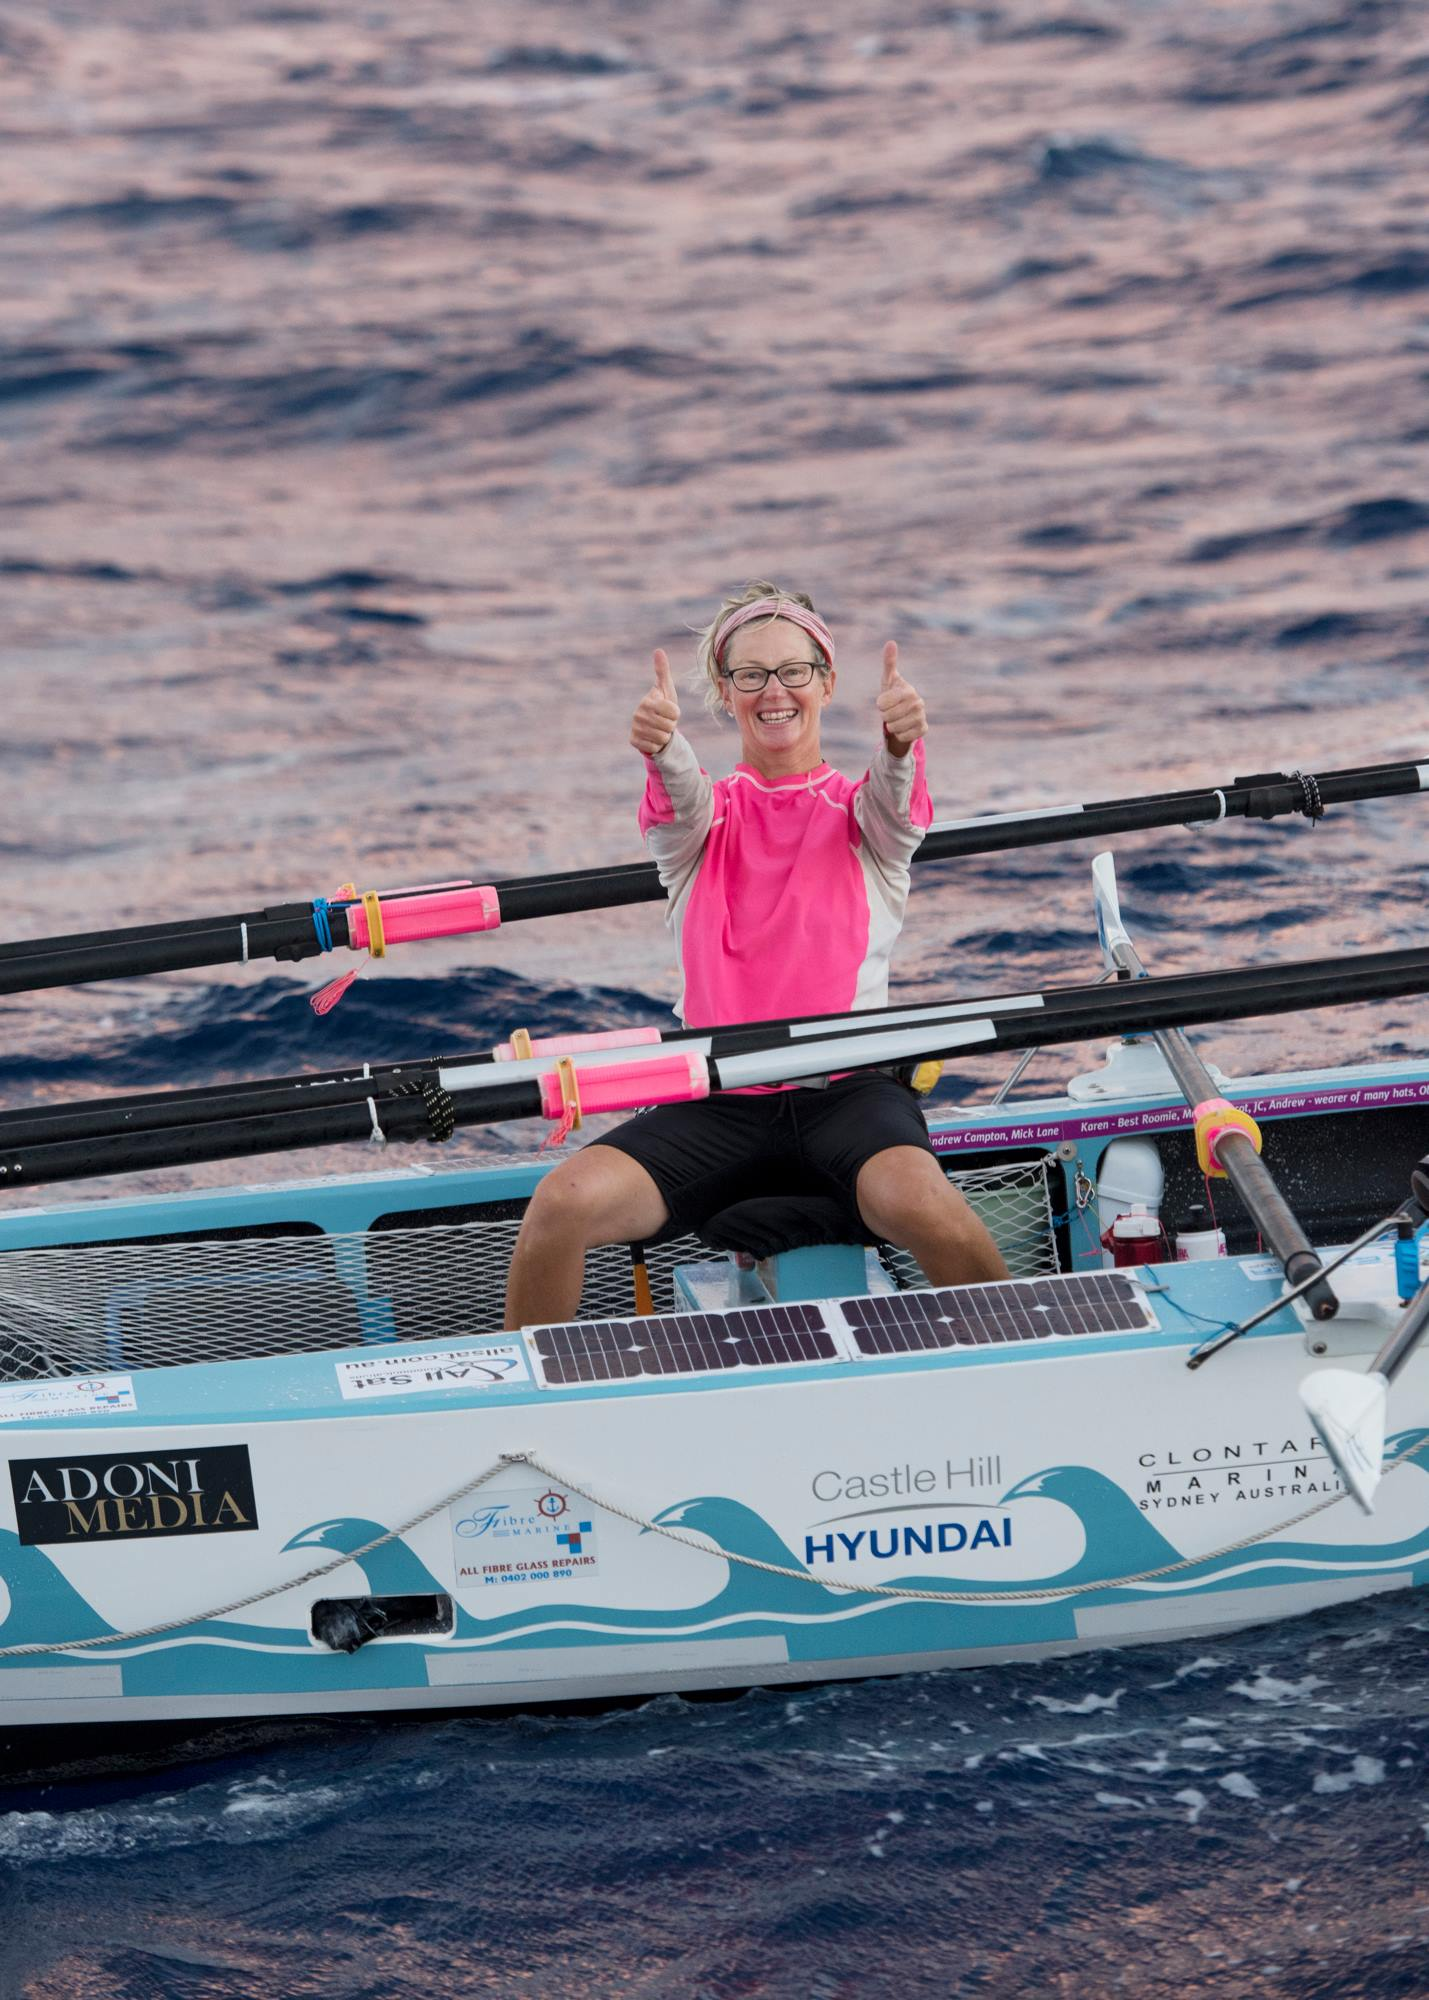 Michelle happy with 440 nm to go!  Photo credit: Robin Skjoldborg